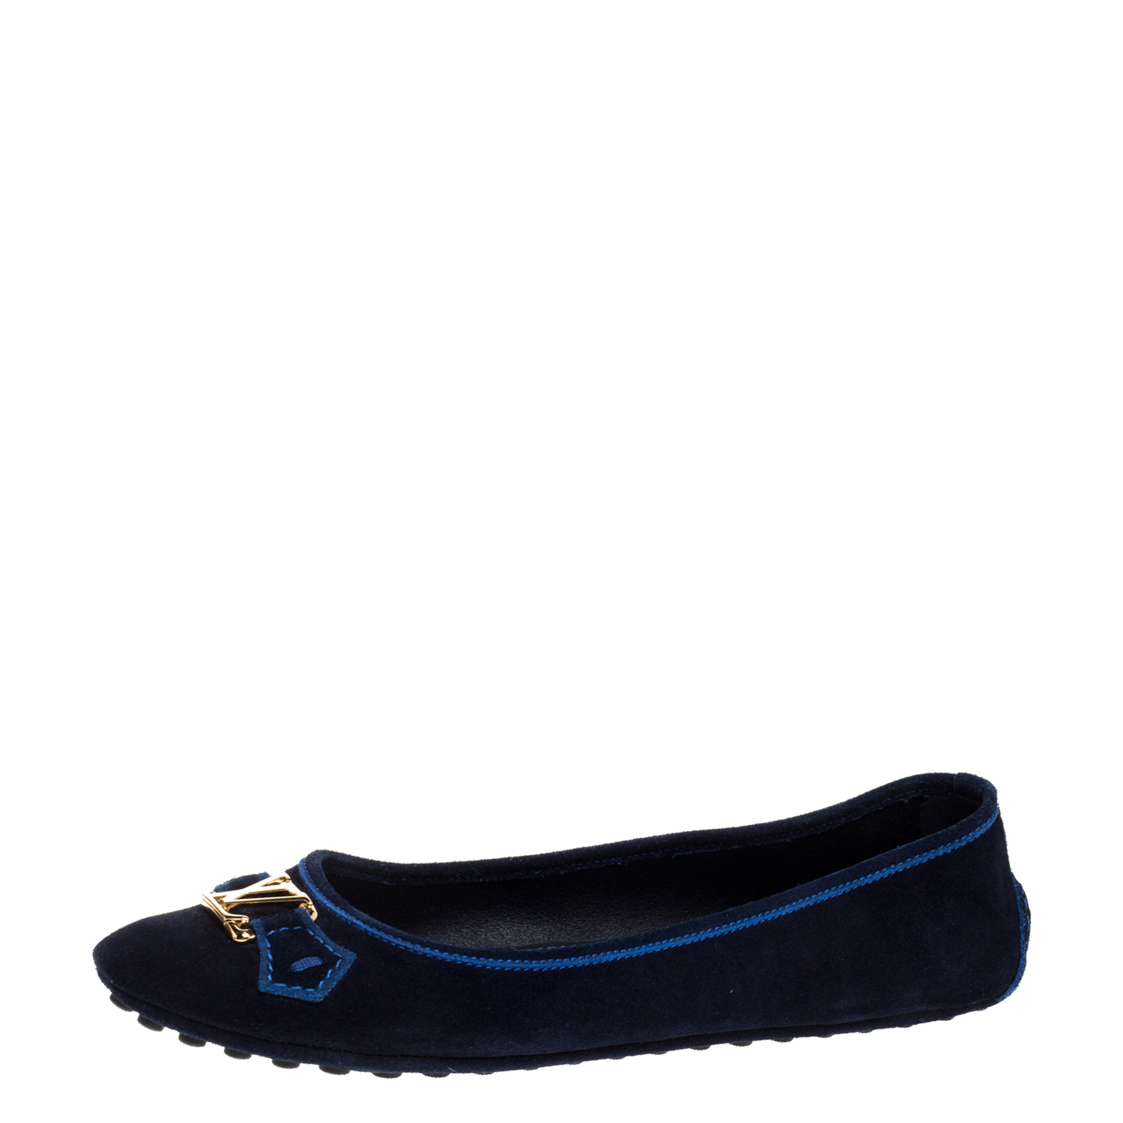 Pre-owned Louis Vuitton Navy Blue Suede Leather Logo Ballet Flats Size 39